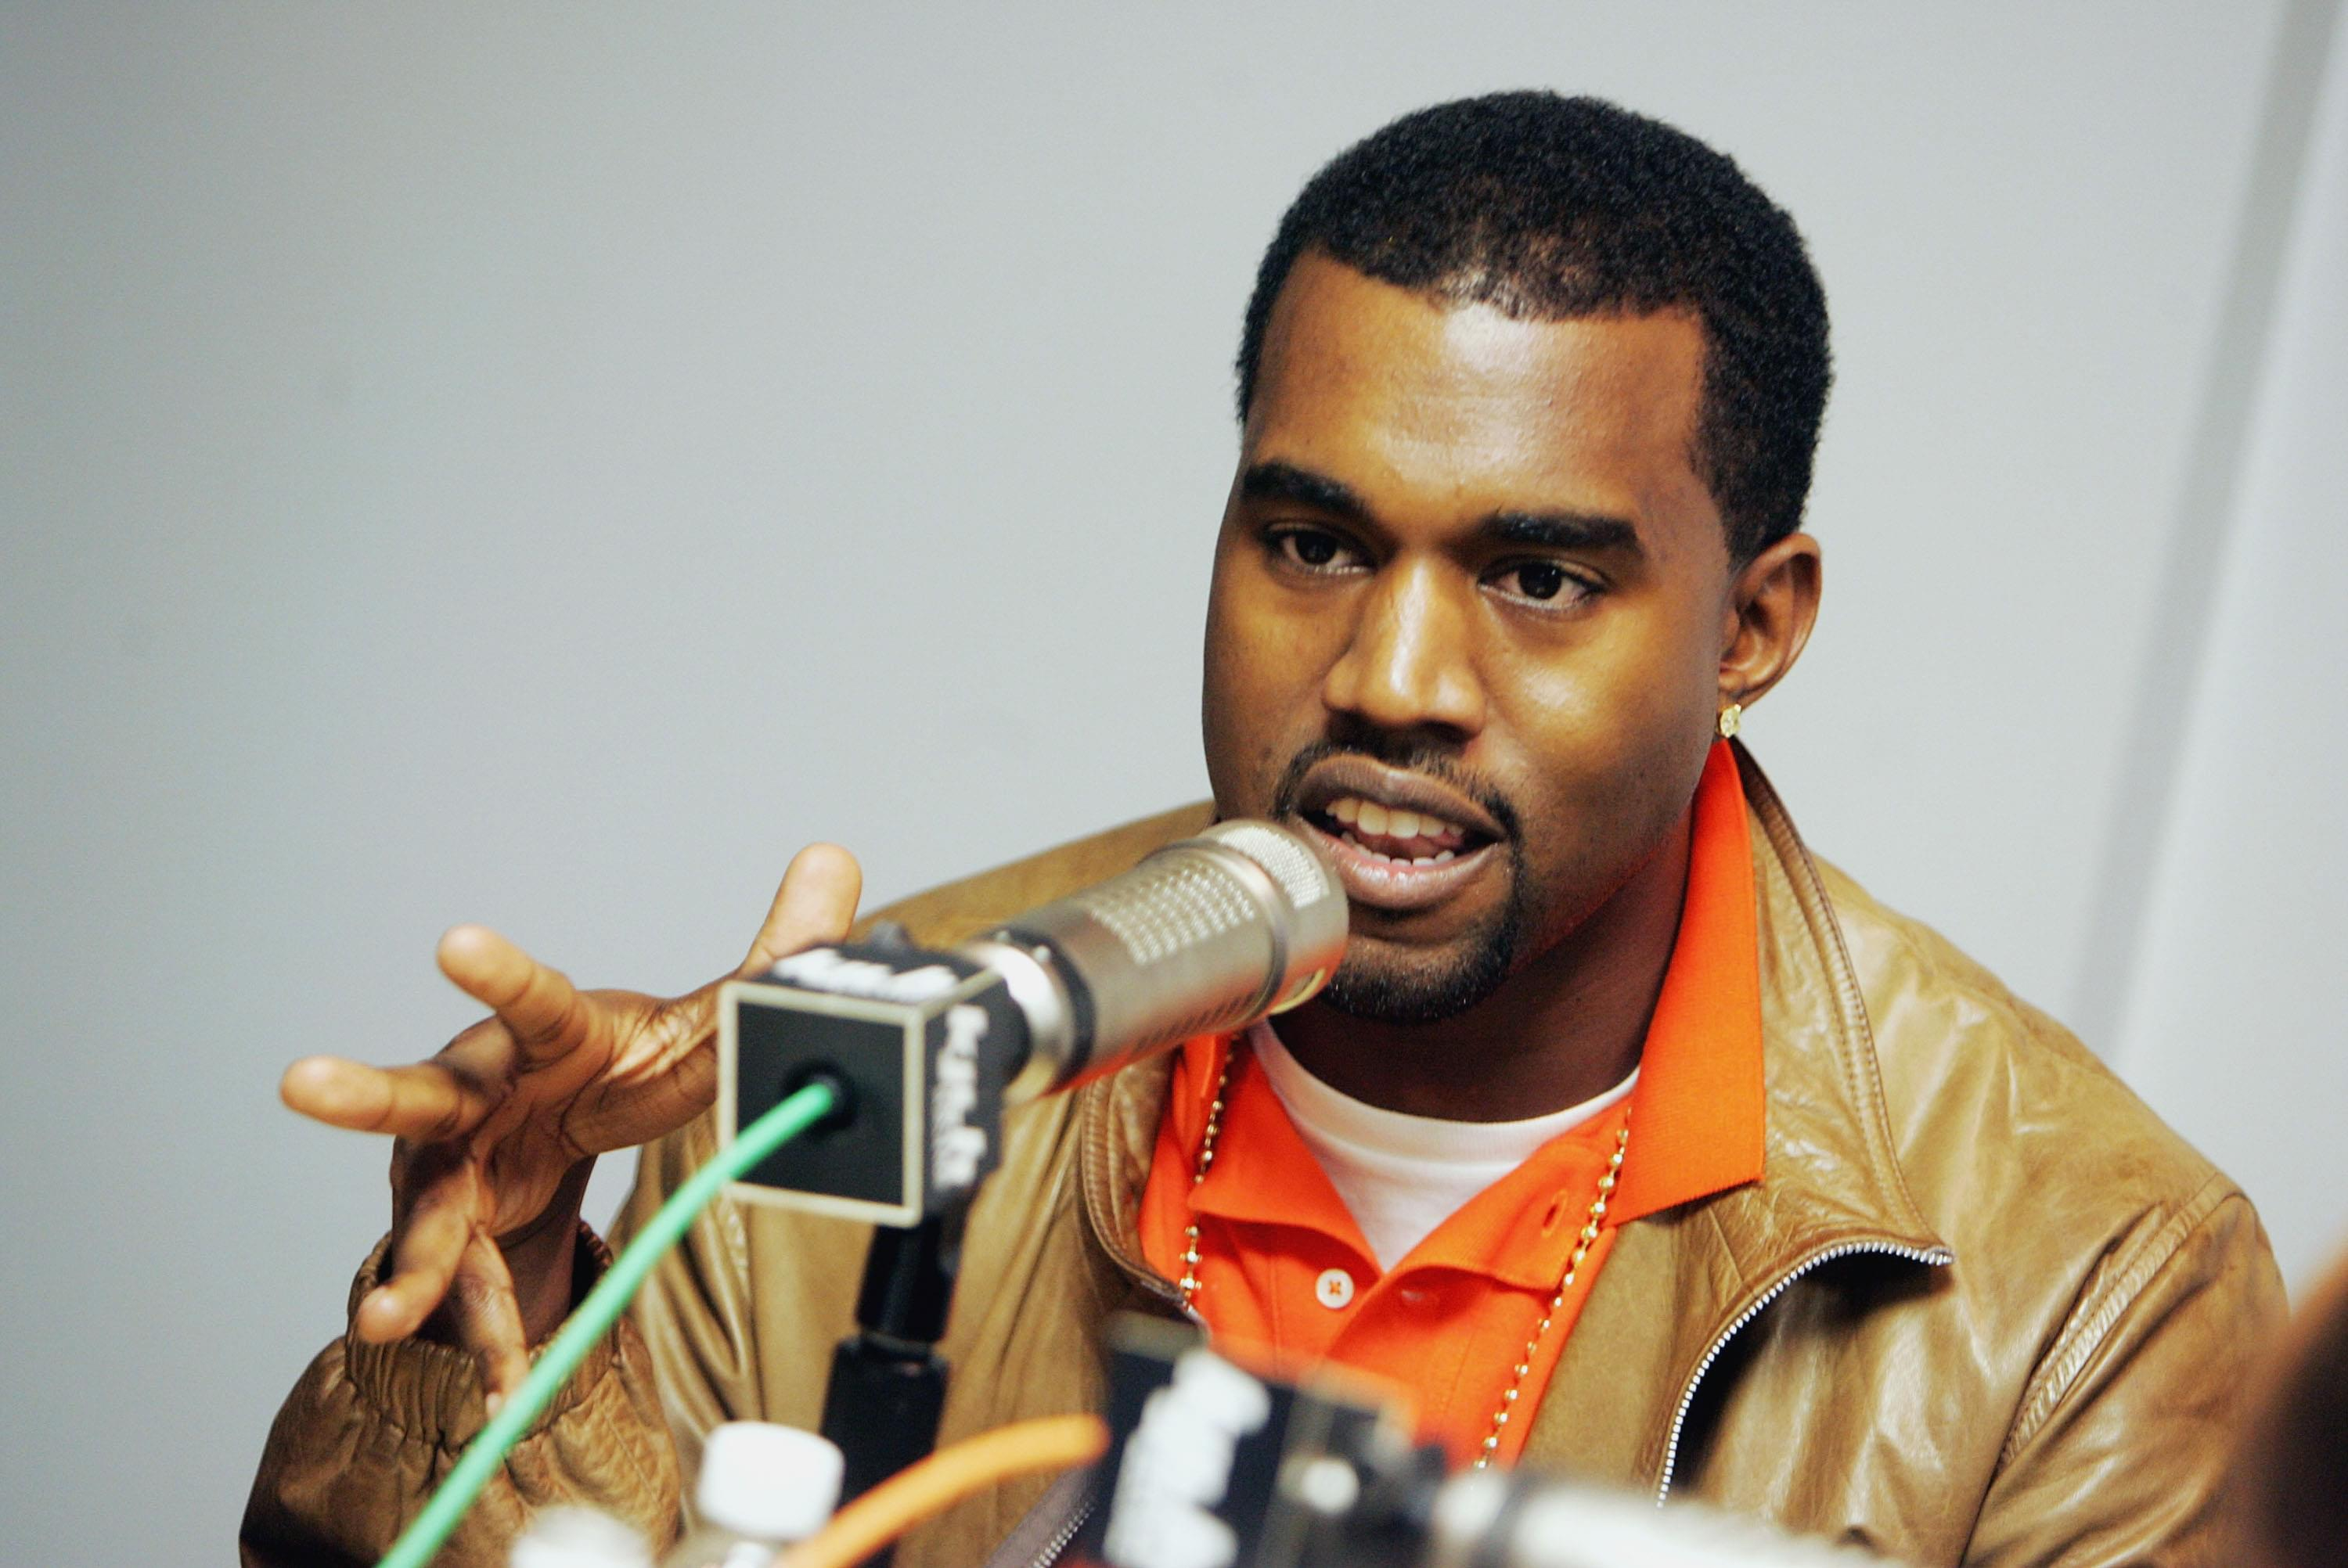 Report: Kanye West Considering the Idea of Making 52 Records in 52 Weeks